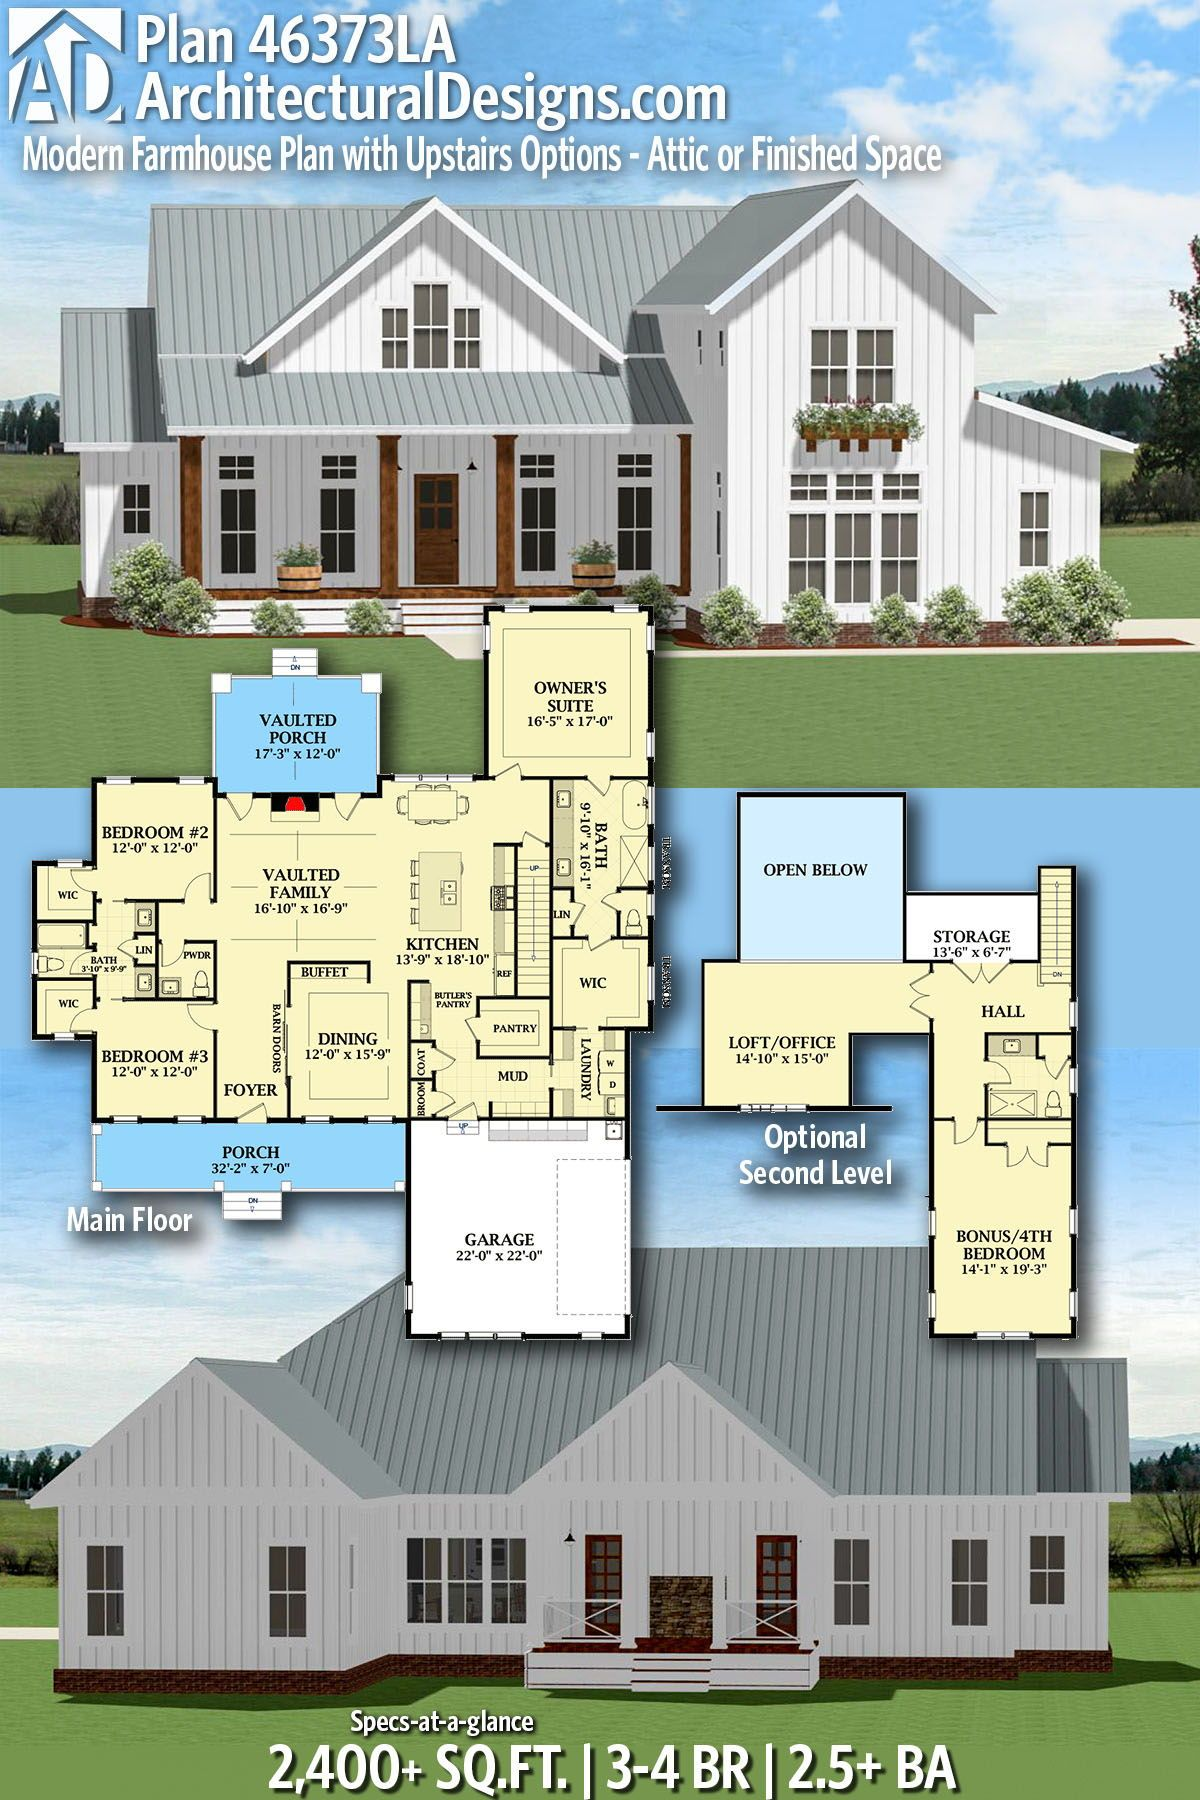 Plan 46373la Modern Farmhouse Plan With Upstairs Options Attic Or Finished Space Farmhouse Plans House Plans Farmhouse Modern Farmhouse Plans